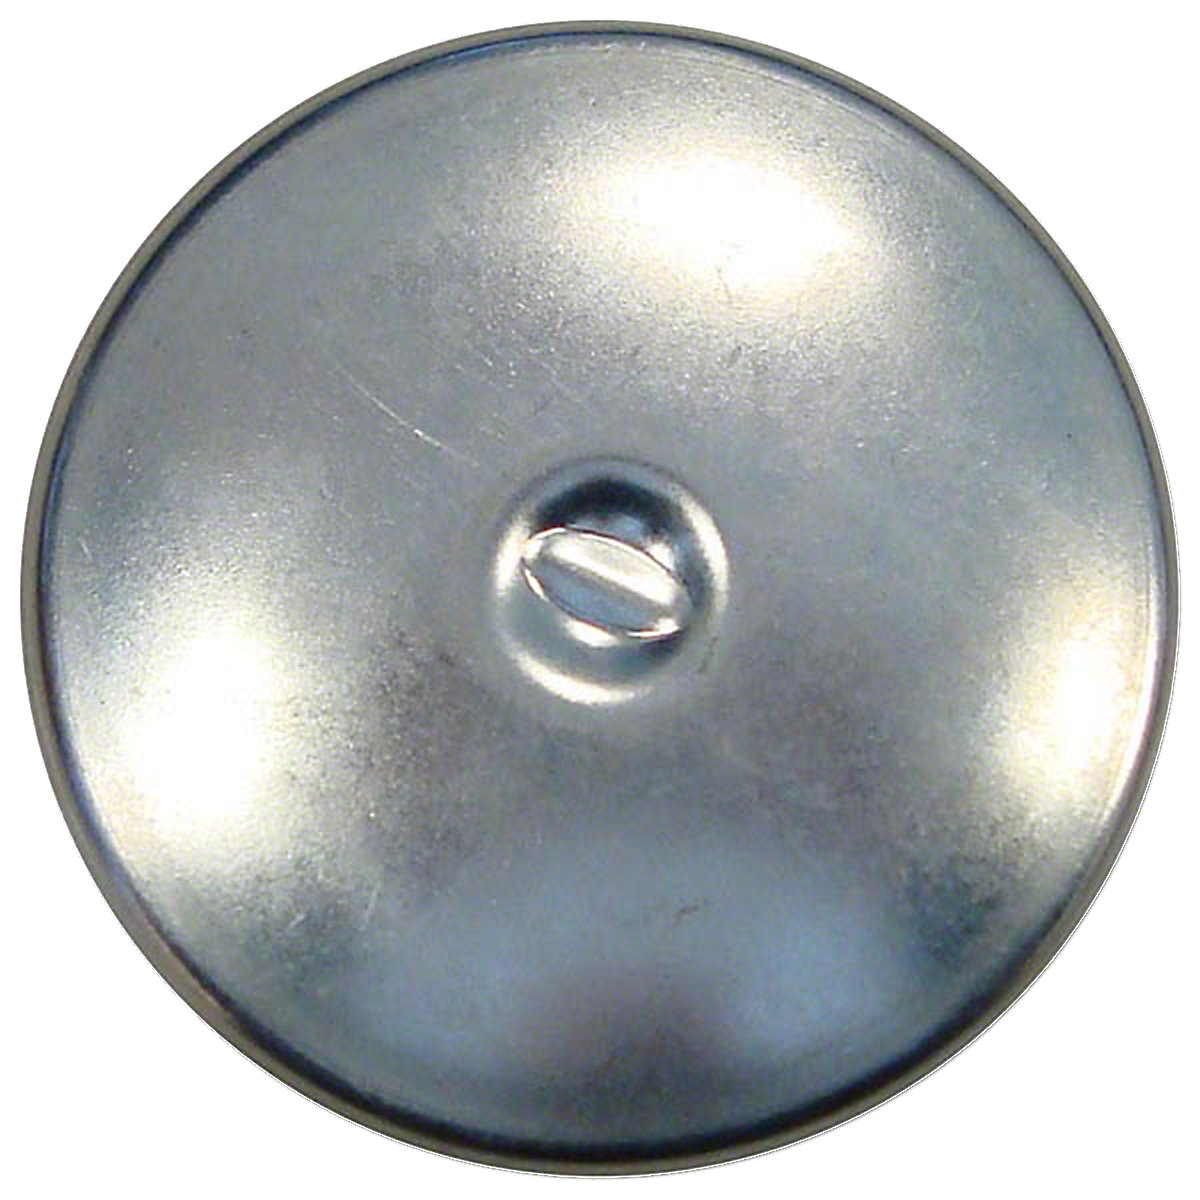 Fuel Cap With Gasket For Allis Chalmers: 190XT, D21, 190, 200, 210, 220, 7000, 7010, 7020, 7030, 7040, 7045, 7050, 7060, 7080, 7580, 8550.